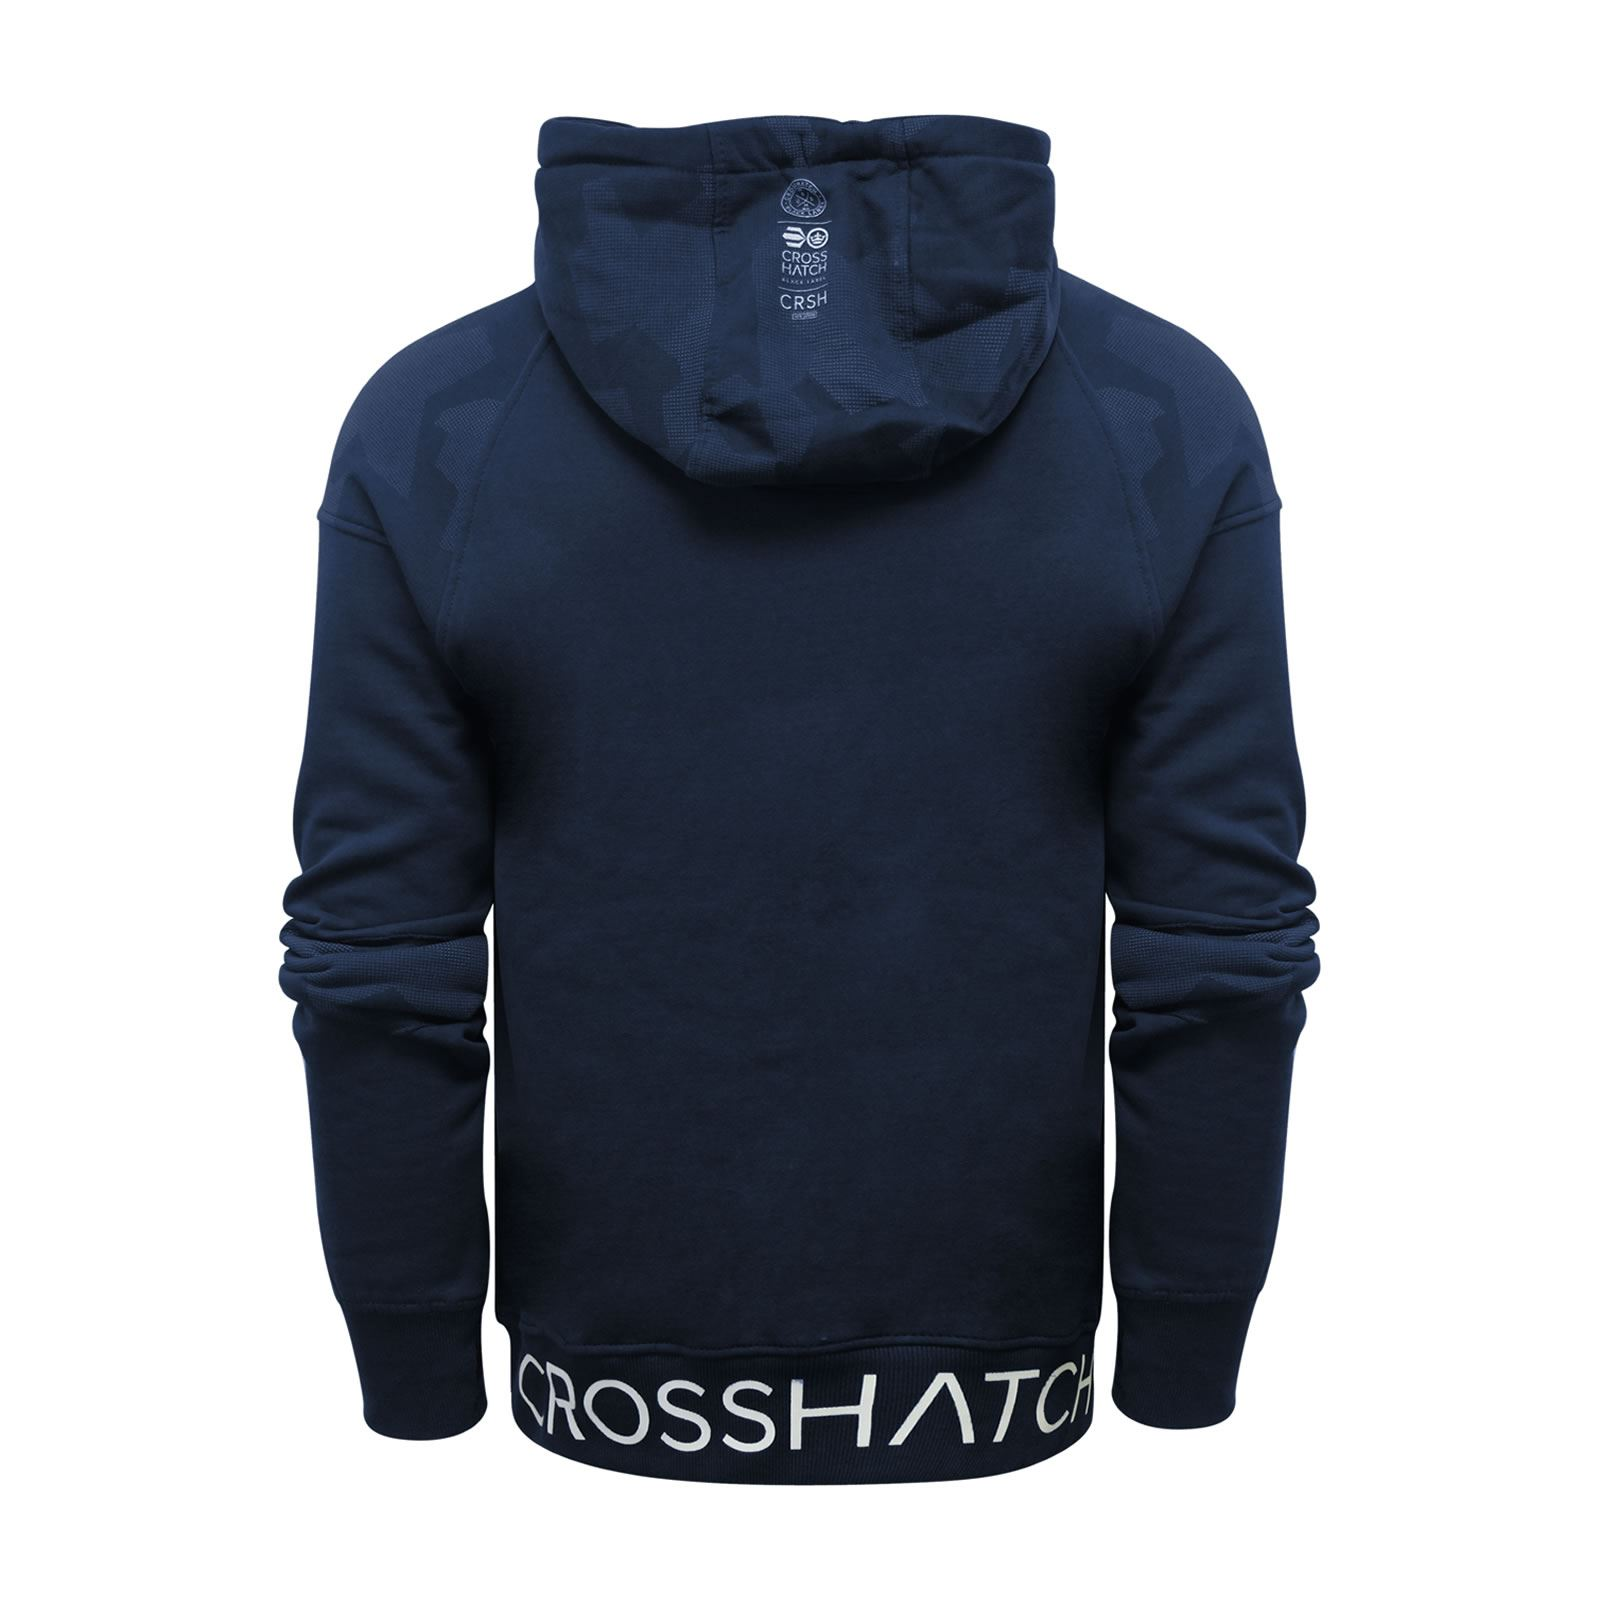 Crosshatch-Quirn-Mens-Hoodie-Cotton-Hooded-Pull-Over-Sweater thumbnail 7